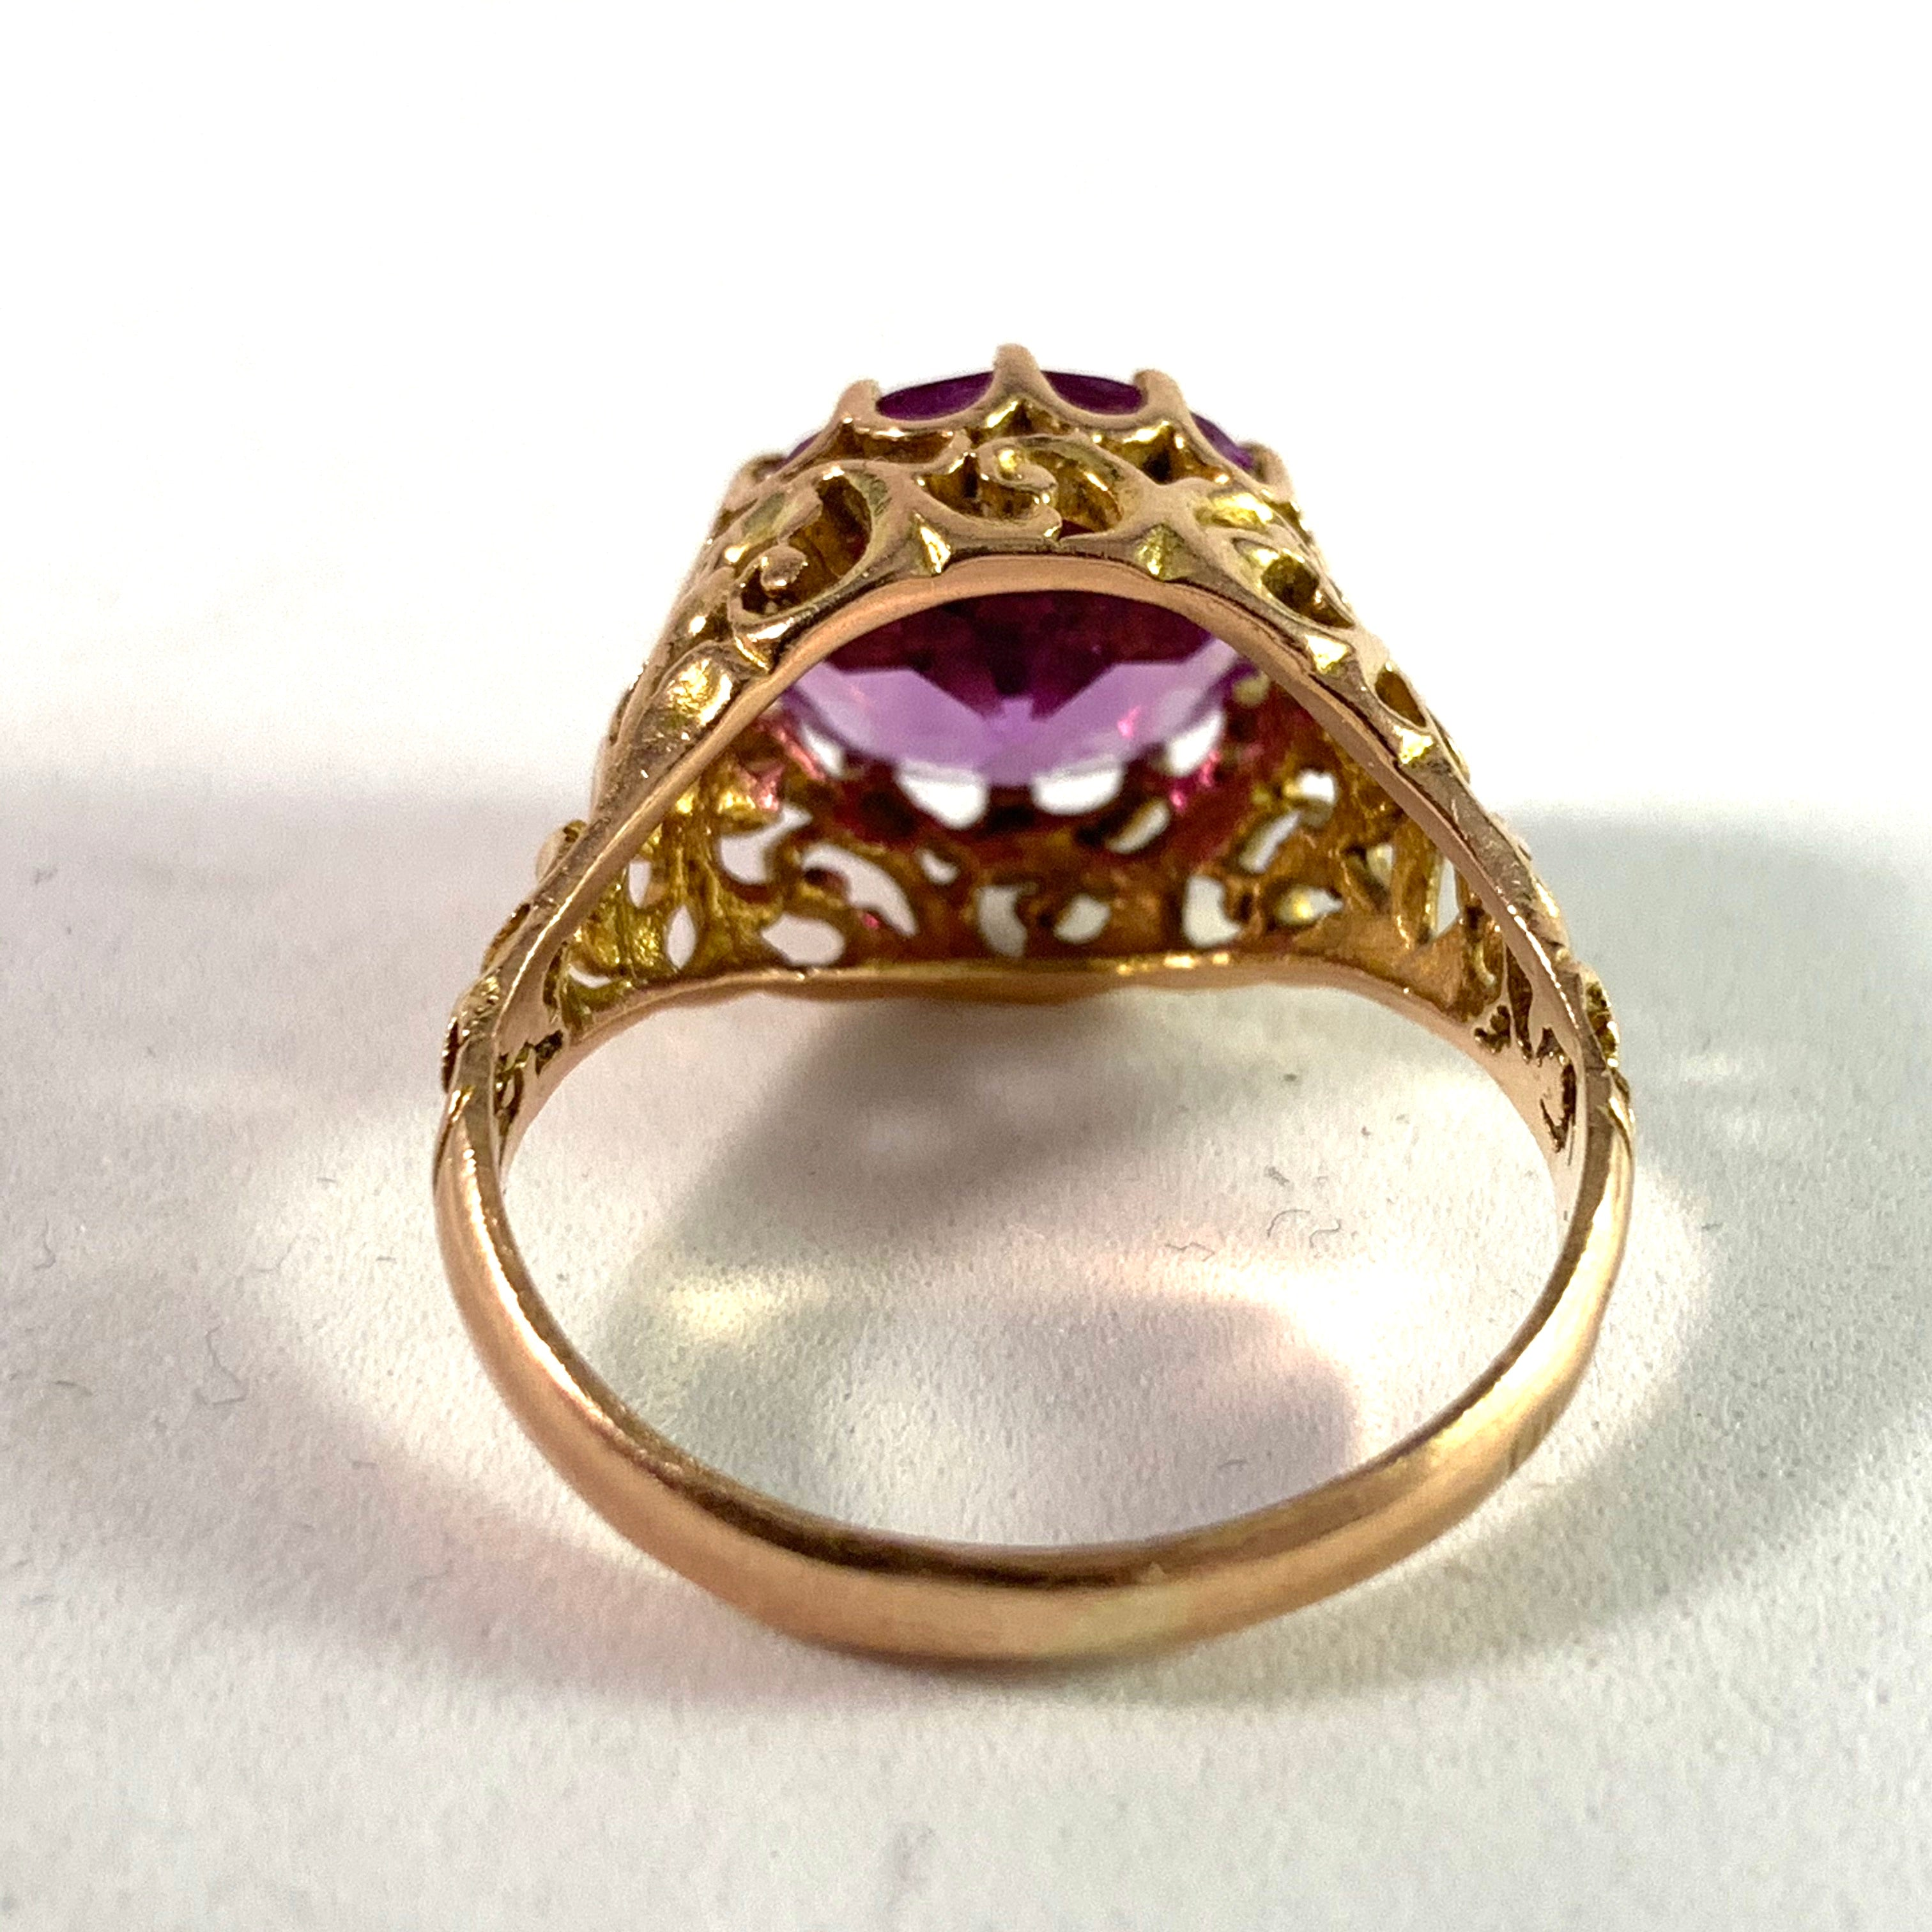 Eastern Mediterranean 1950-60s, 14k Synthetic Sapphire Ring.